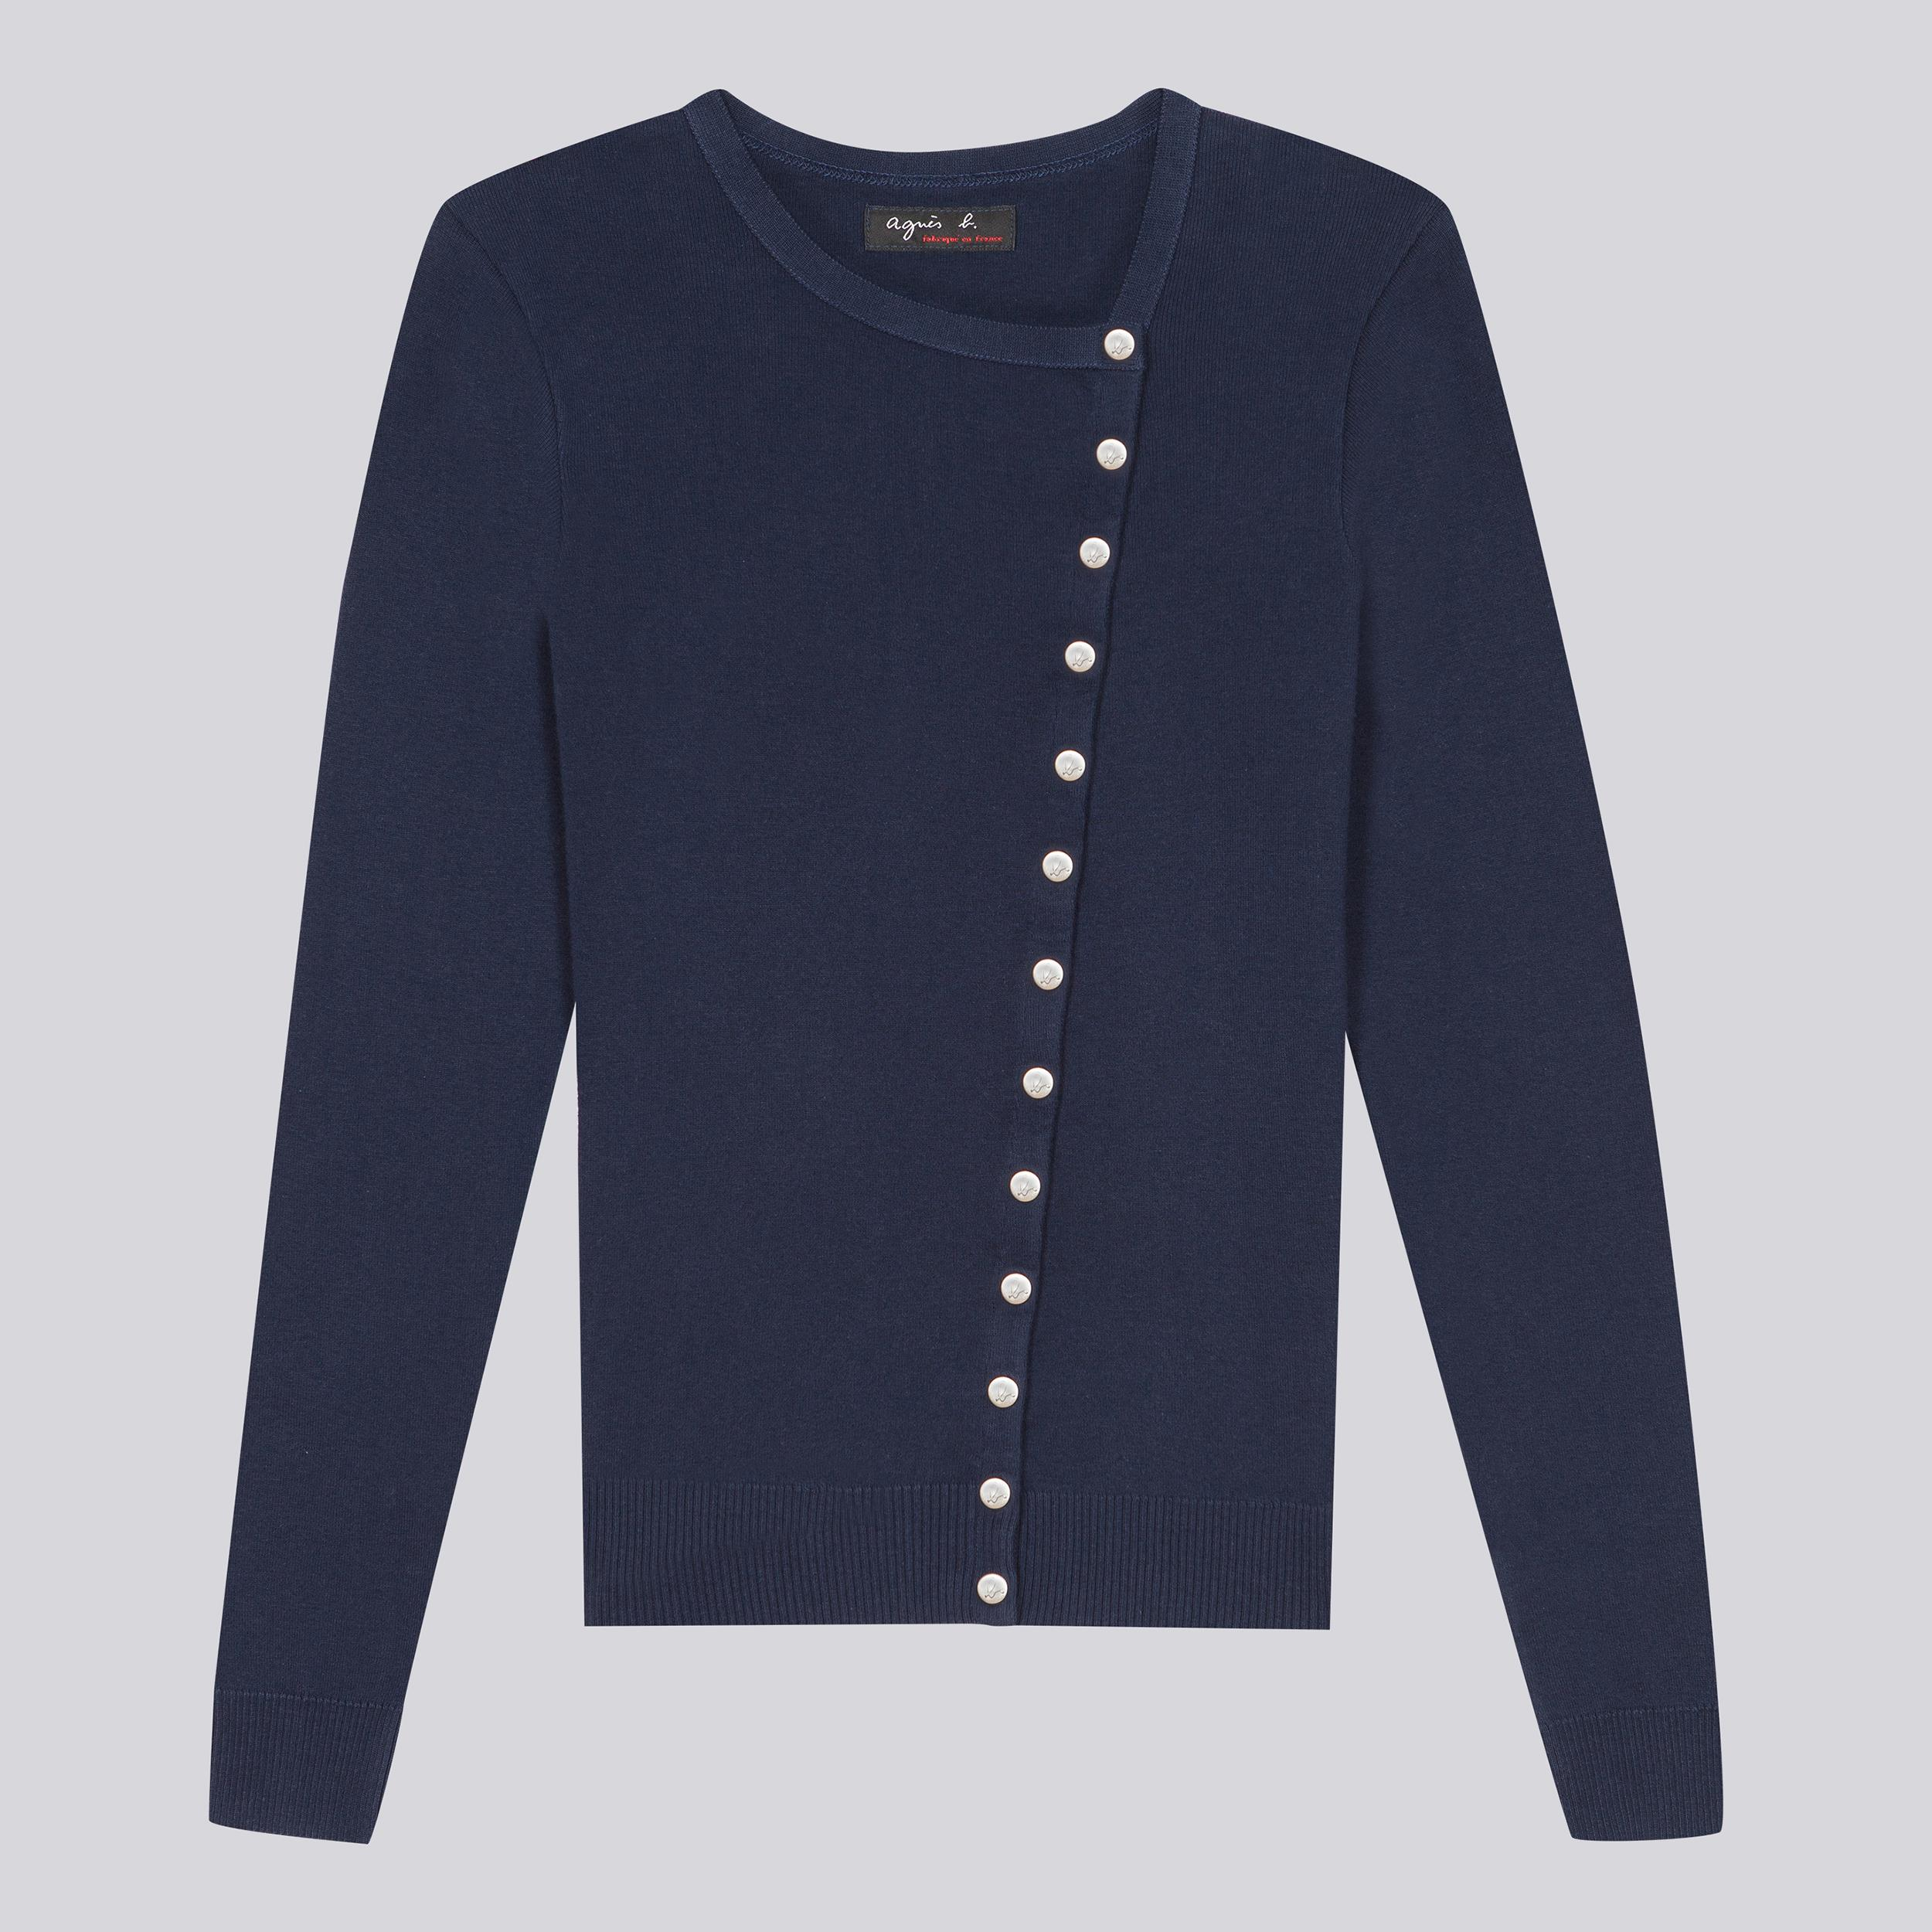 Agnes b. Navy Cardigan Perfect in Black | Lyst